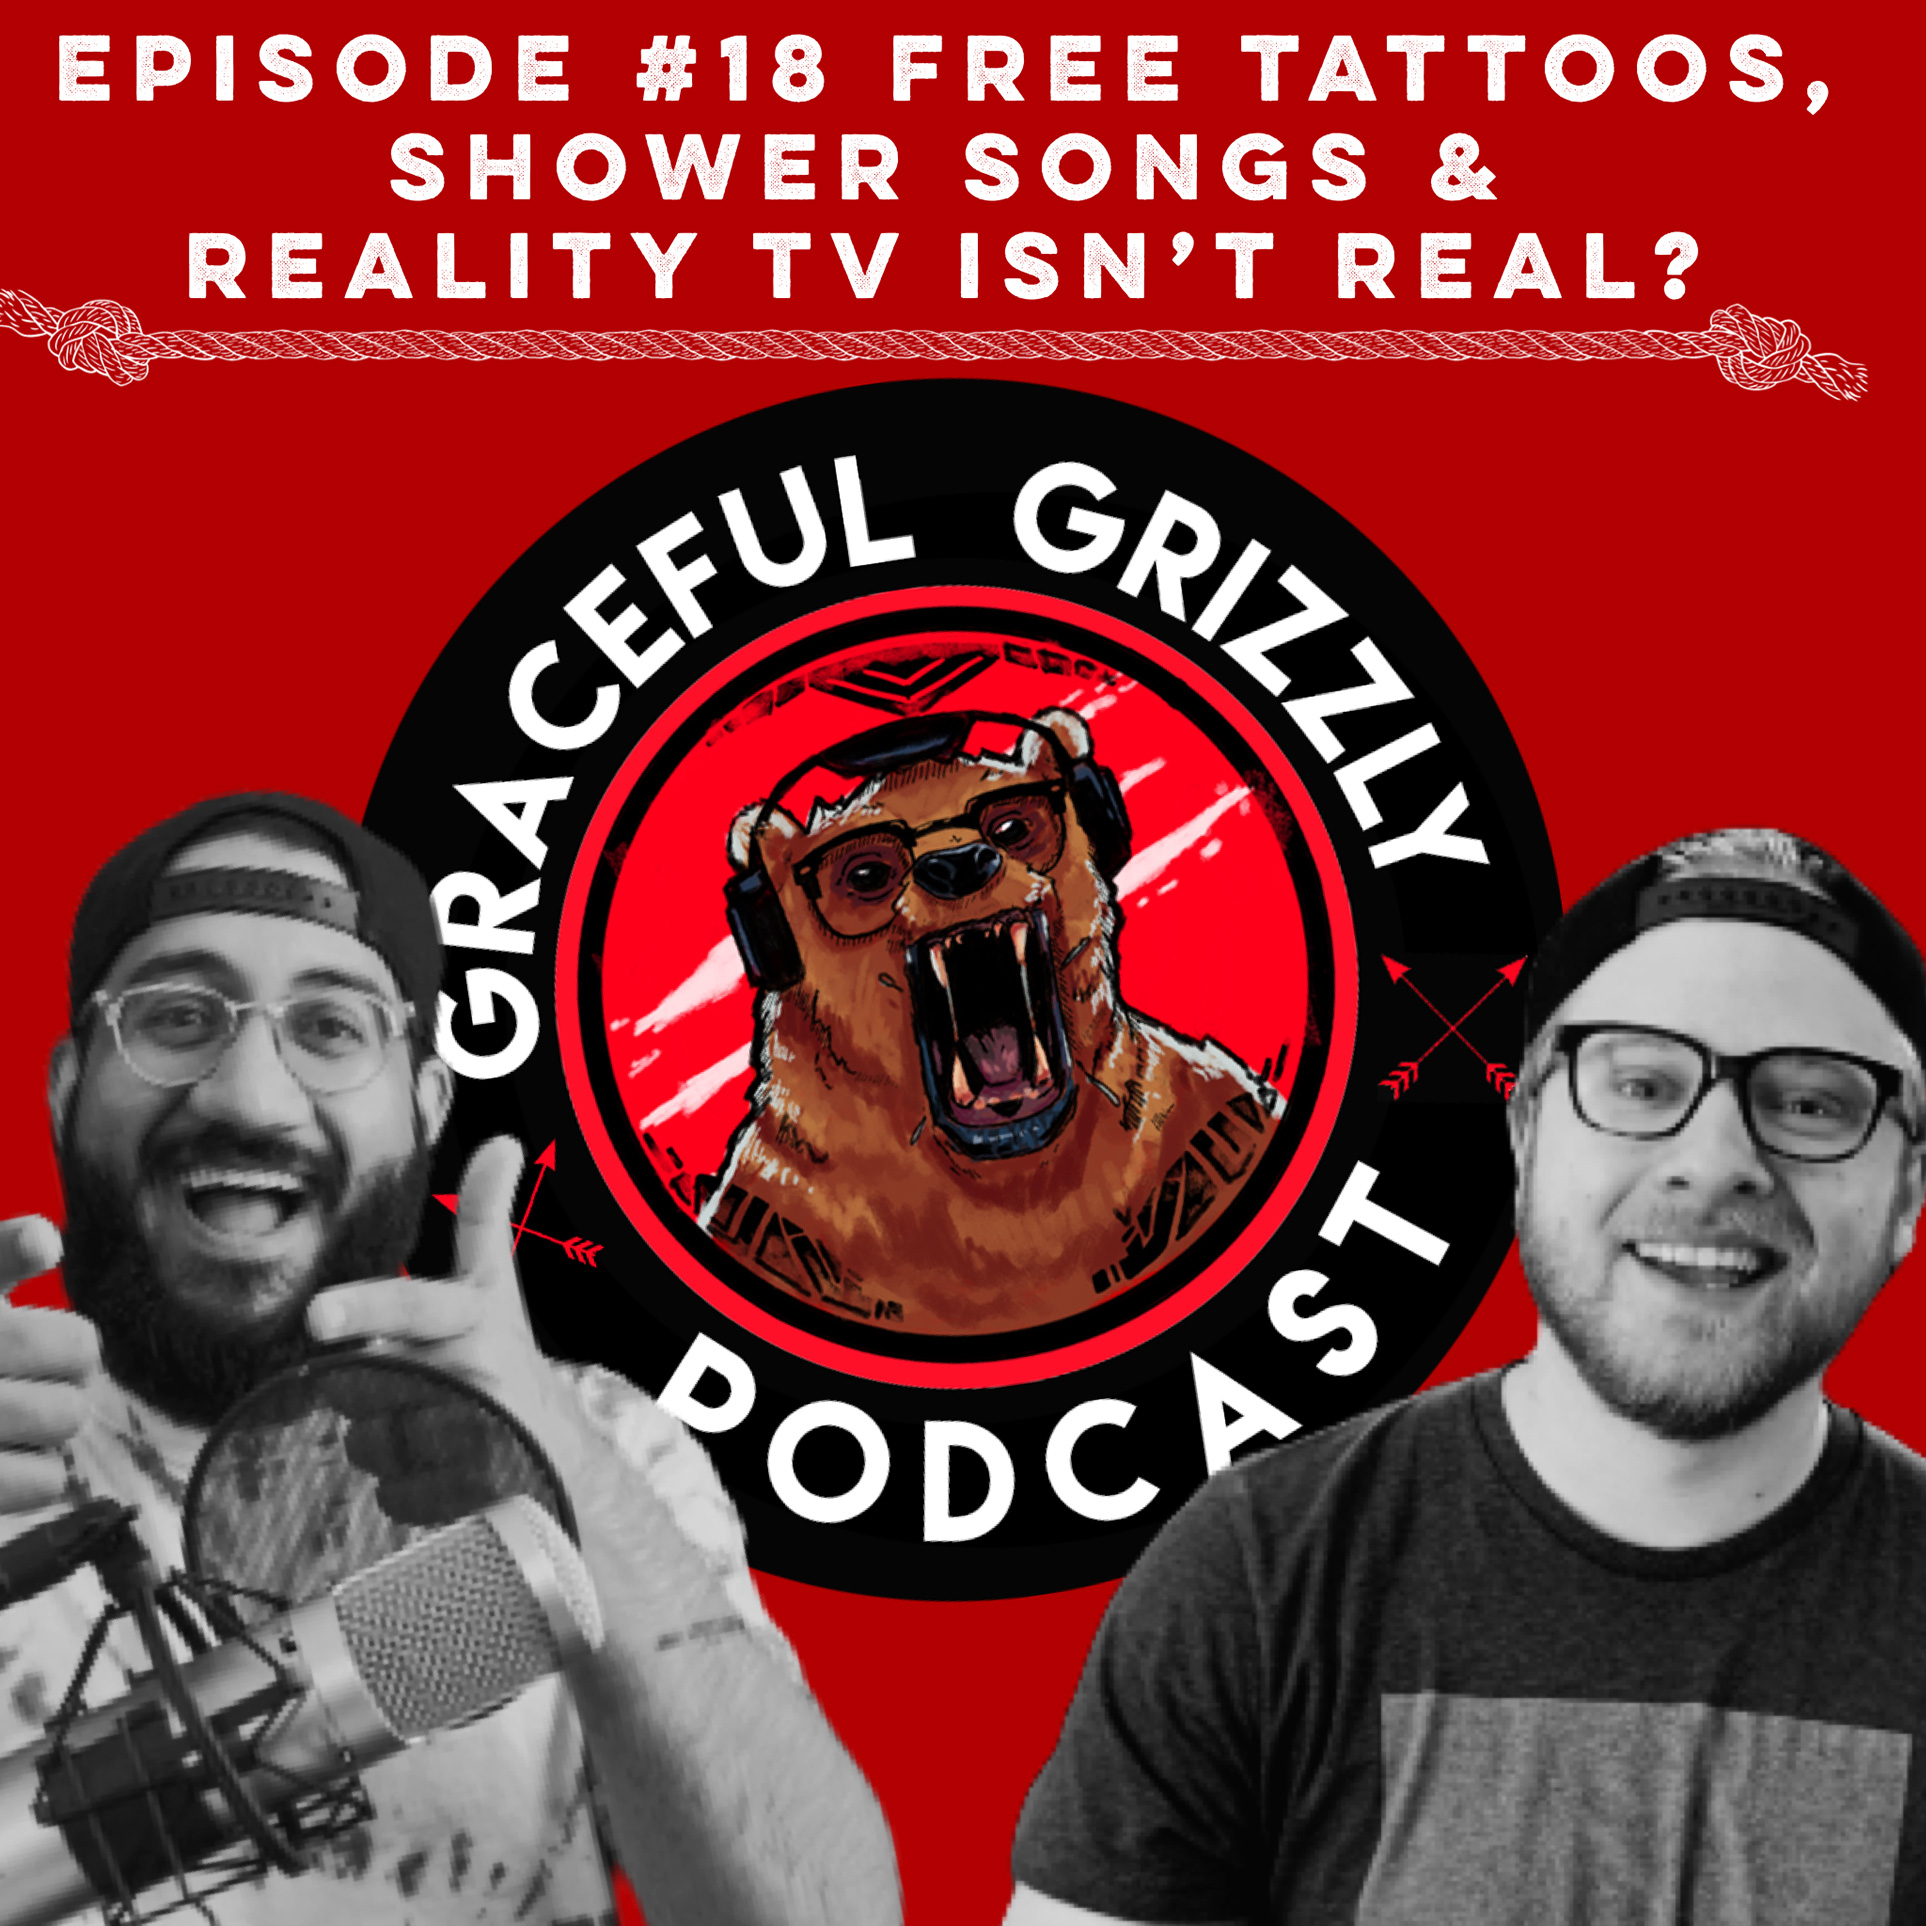 Graceful Grizzly Episode 18